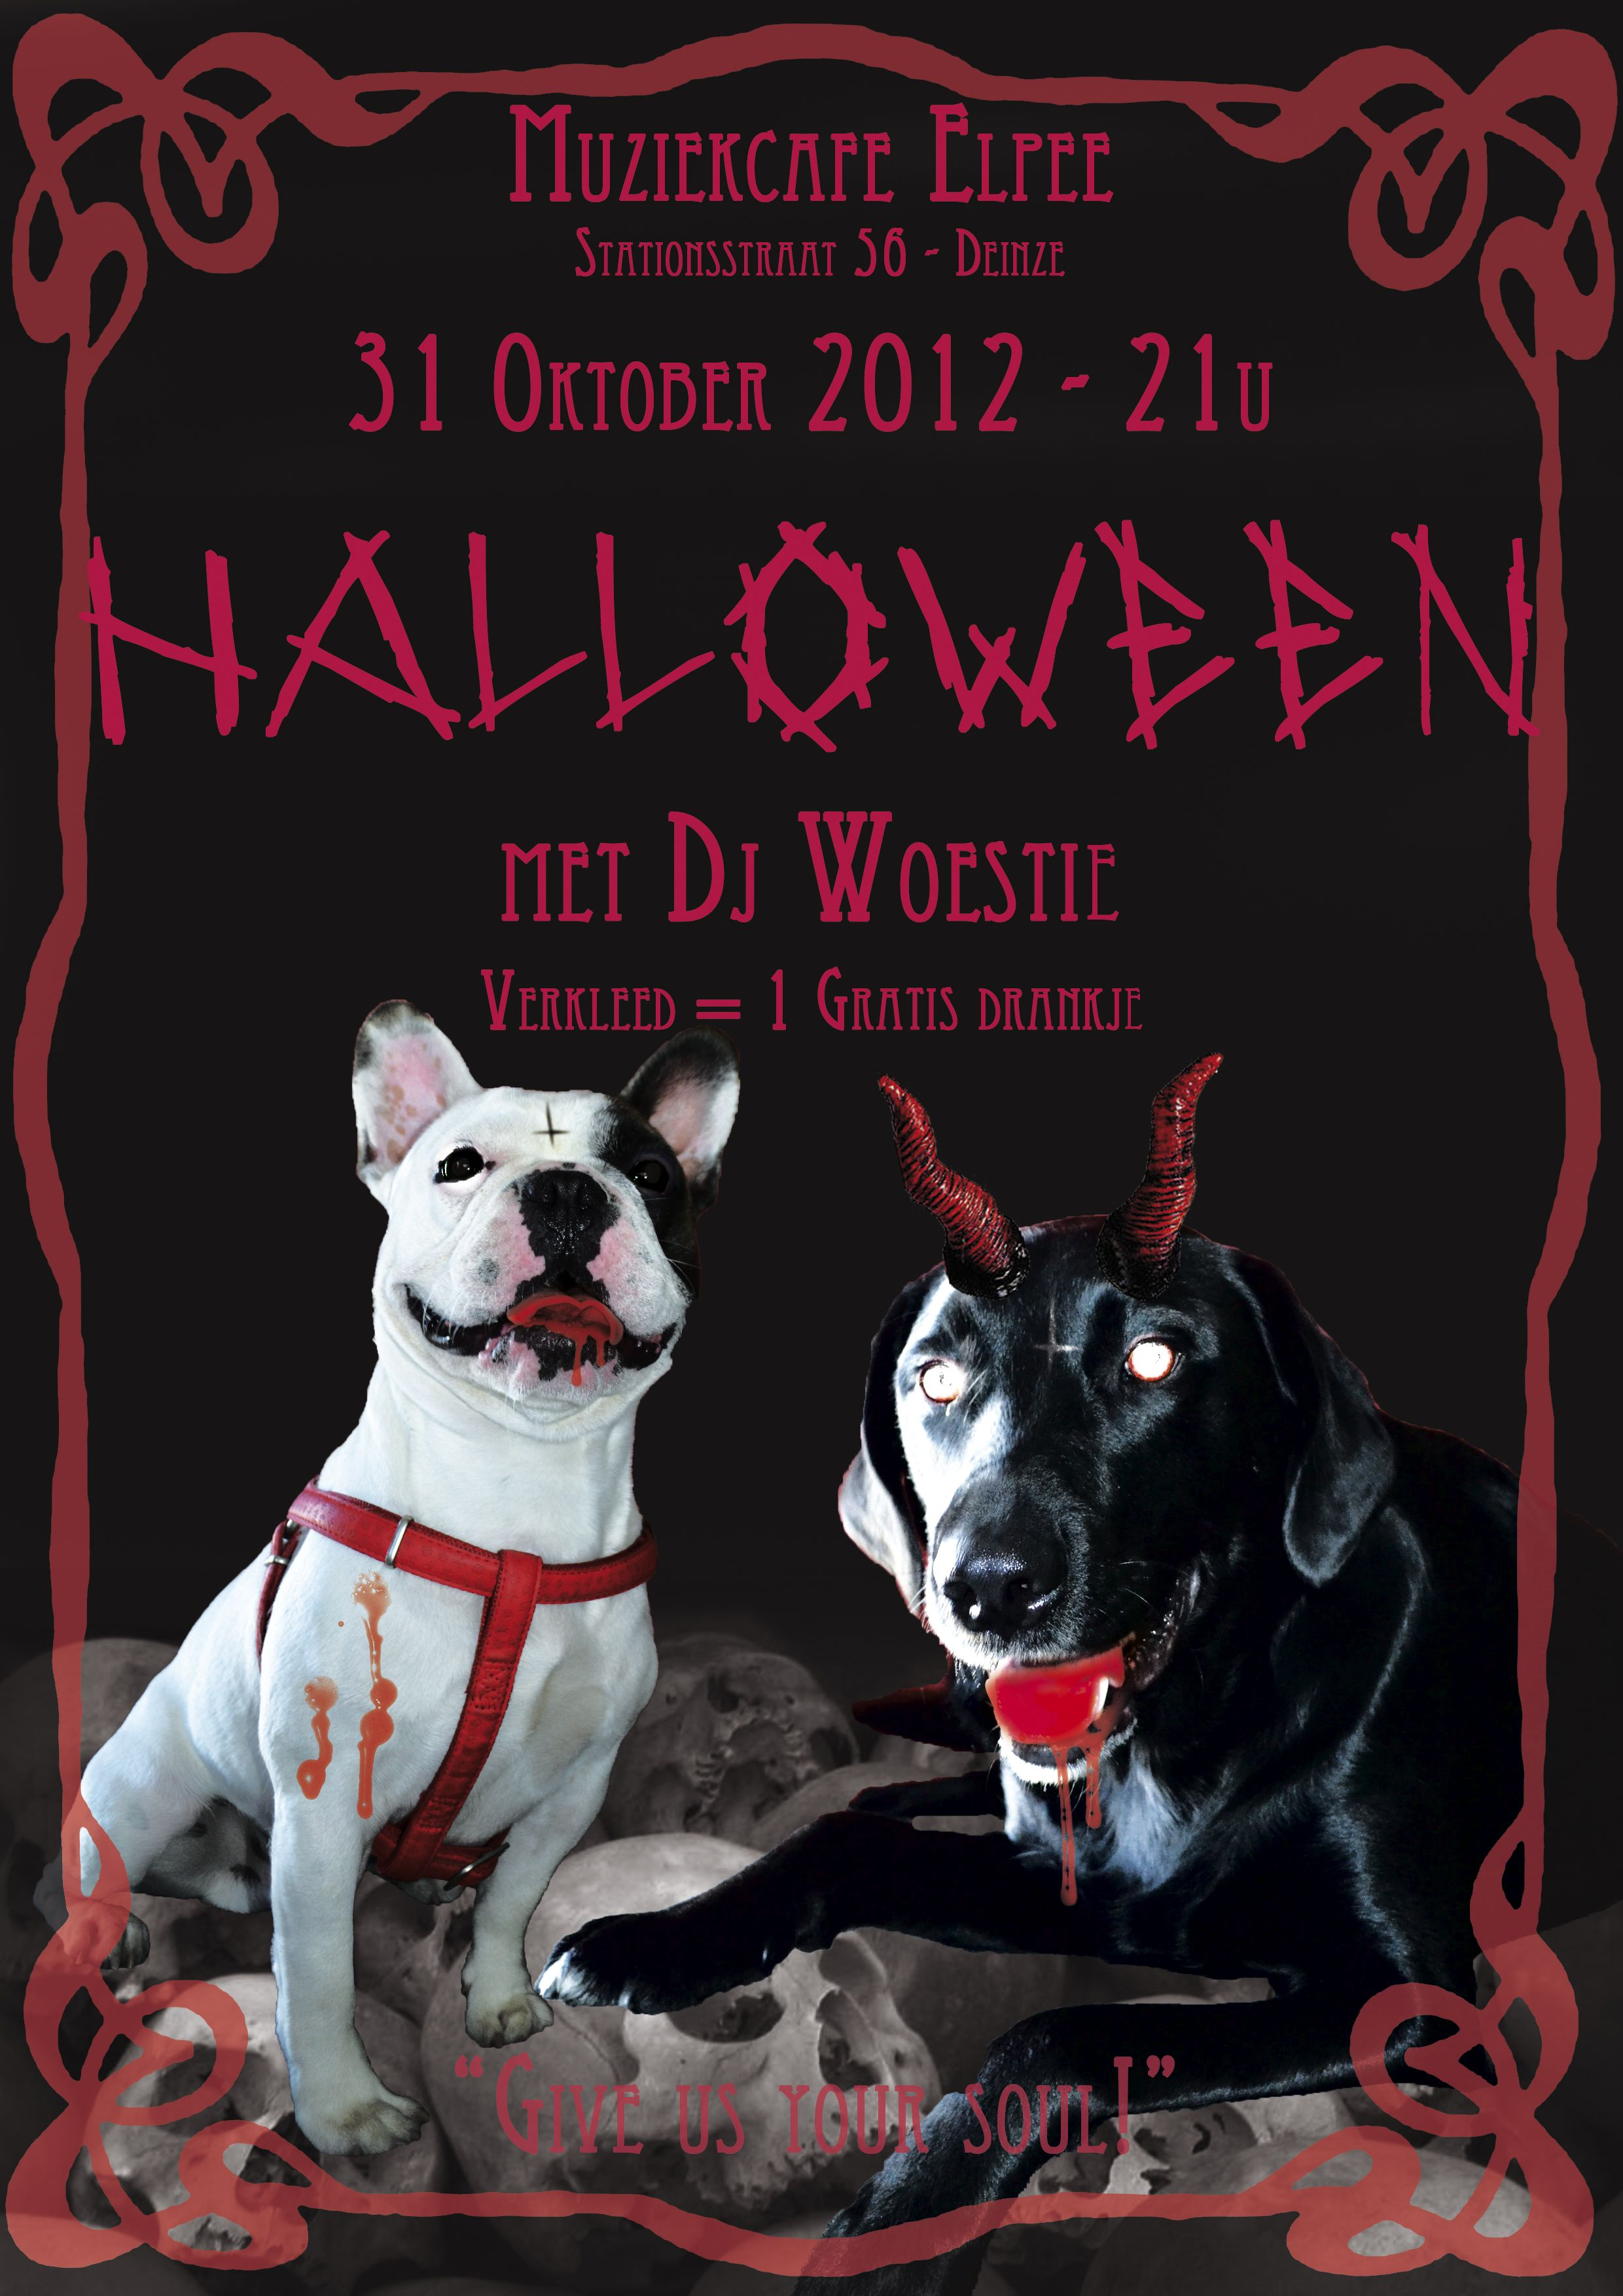 Assignment I did for the music bar Elpee © EvK 2012 #Poster #Halloween #Dogs #Evil #Satan #Frame #EvK